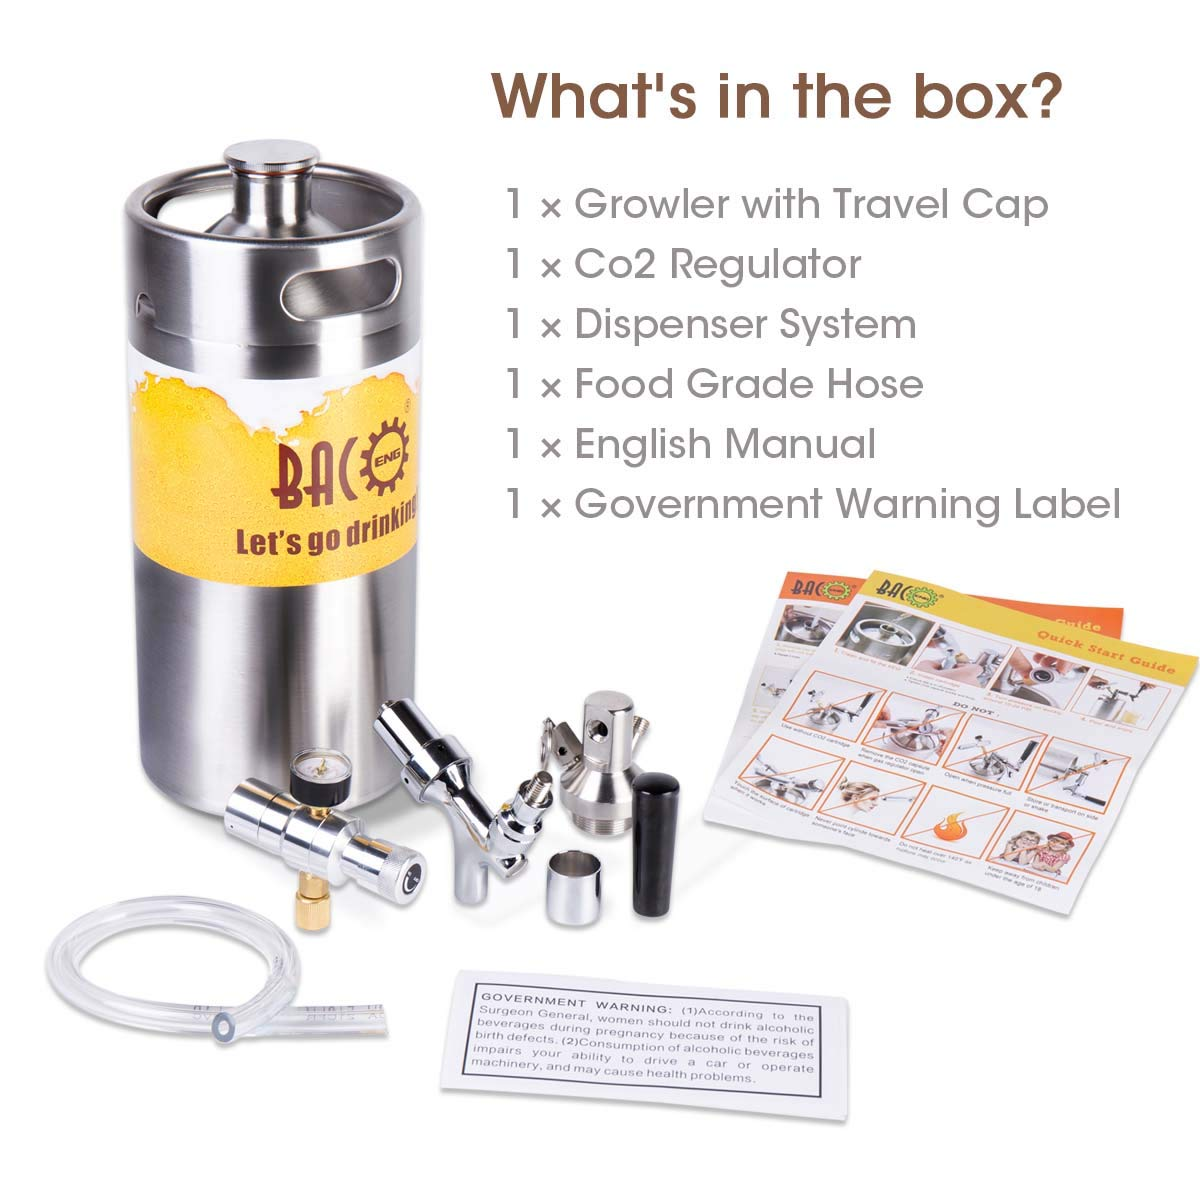 BACOENG 128 Ounce Pressurized Keg Growler, Kegerator for Home Brew Beer with Updated CO2 Regulator by BACOENG (Image #6)